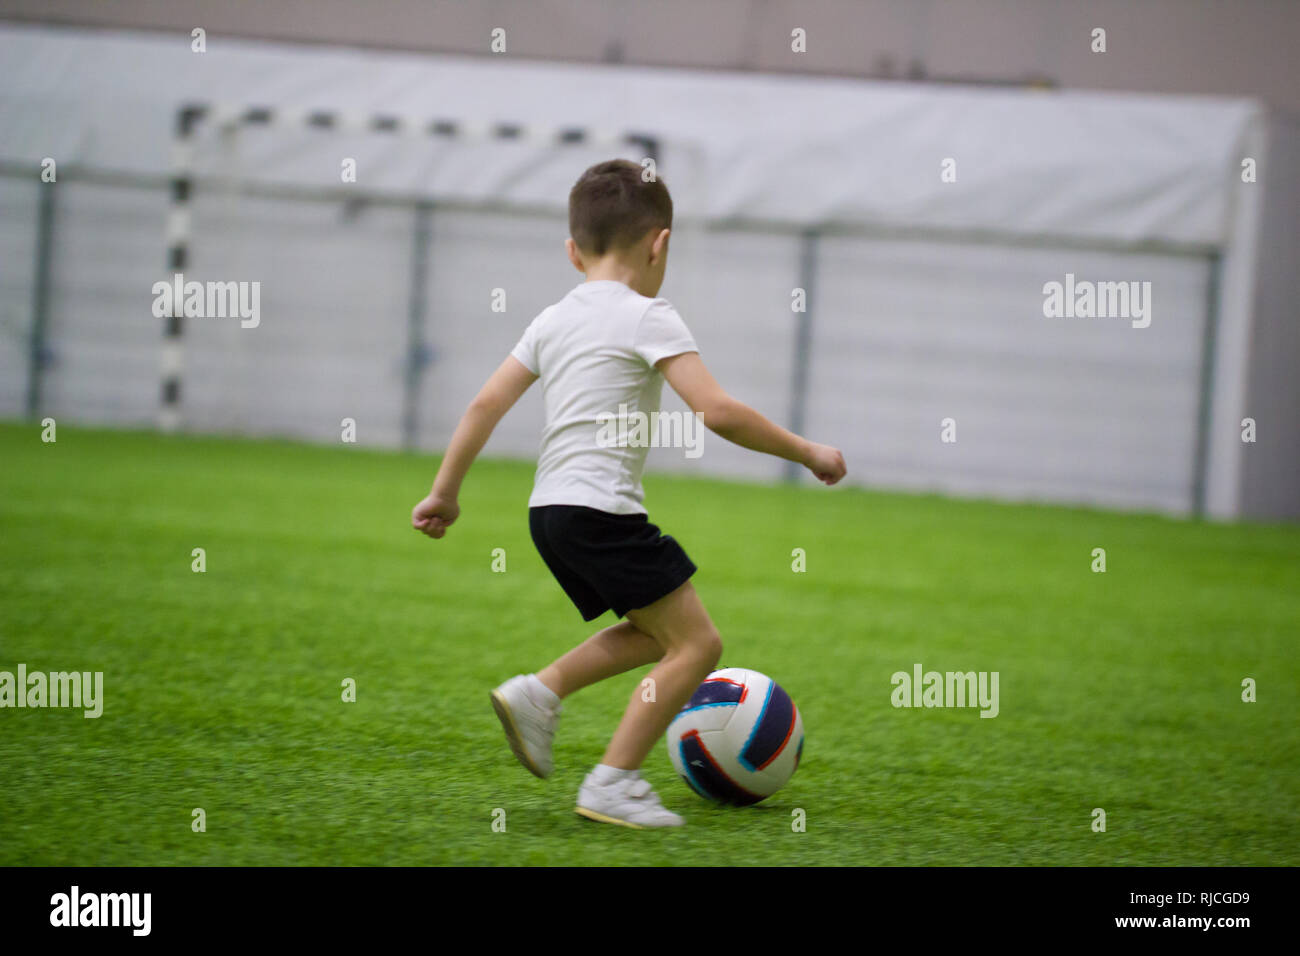 Playing football indoors. A little boy leads the ball - Stock Image